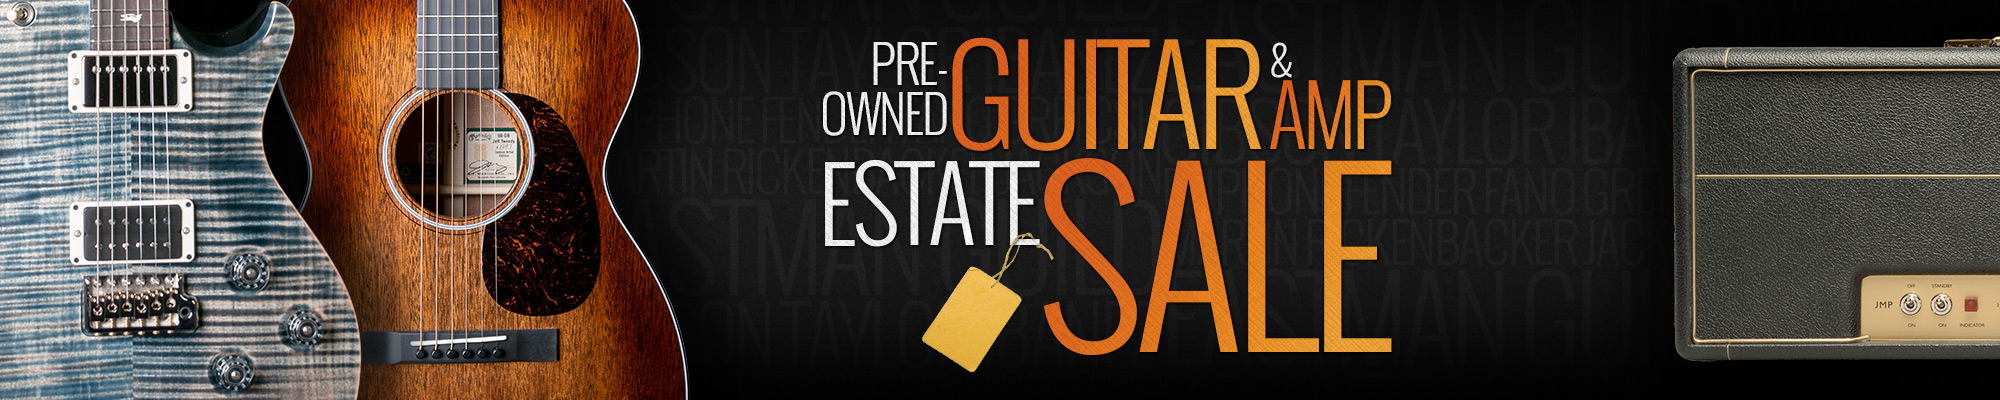 Pre-Owned Guitar & Amp Estate Sale